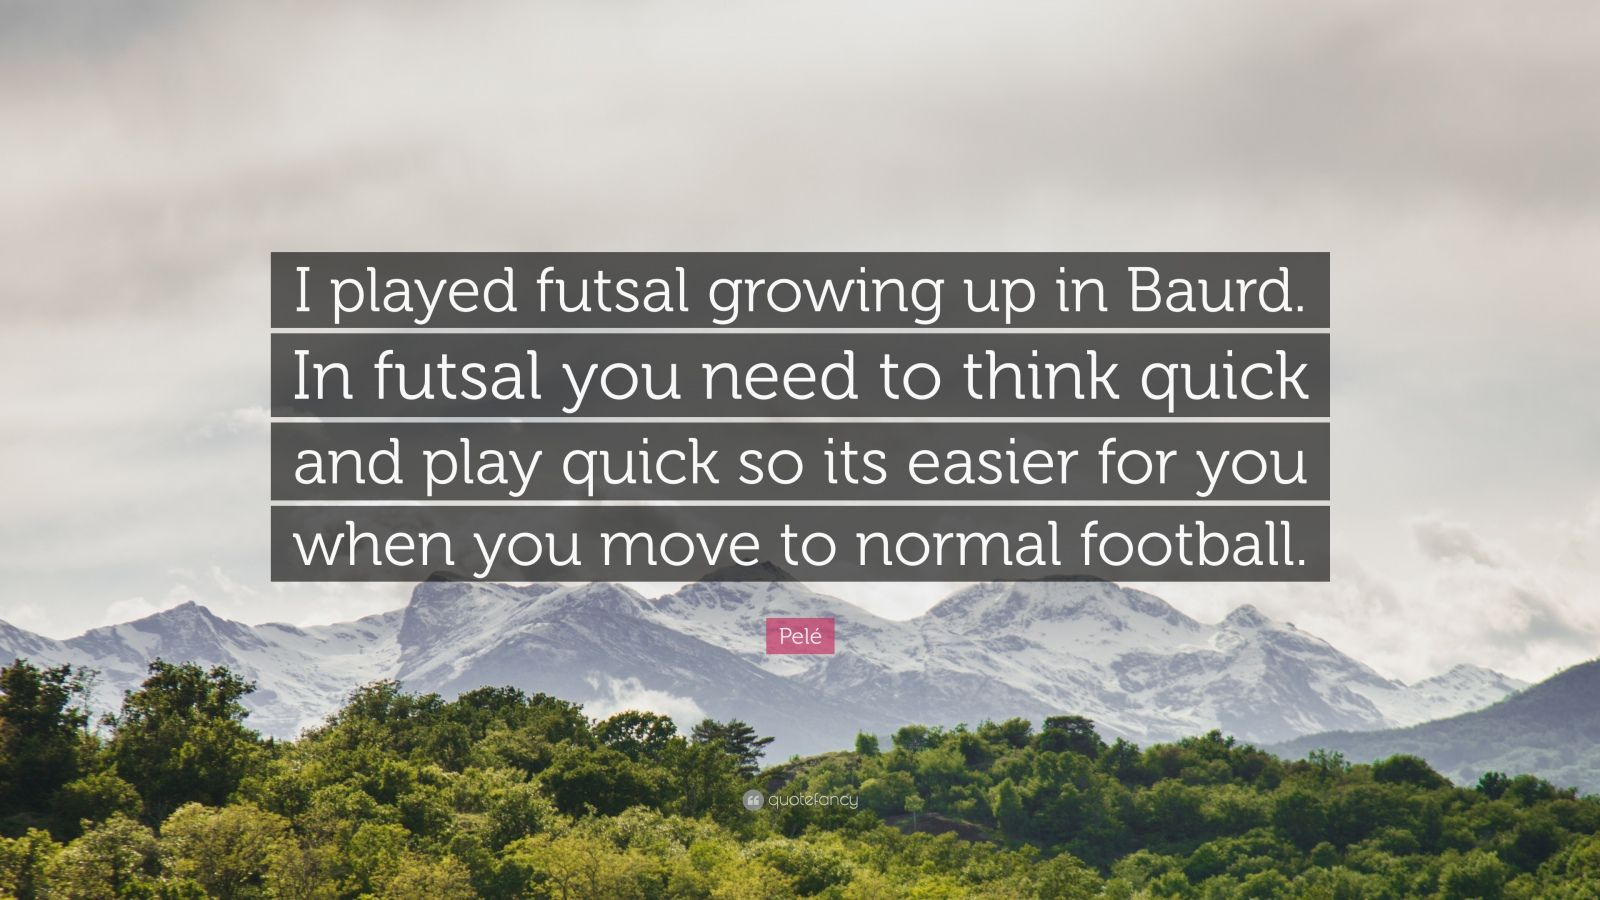 """Pelé Quote: """"I played futsal growing up in Baurd. In futsal you need to think quick and play quick so its easier for you when you move to normal football."""""""